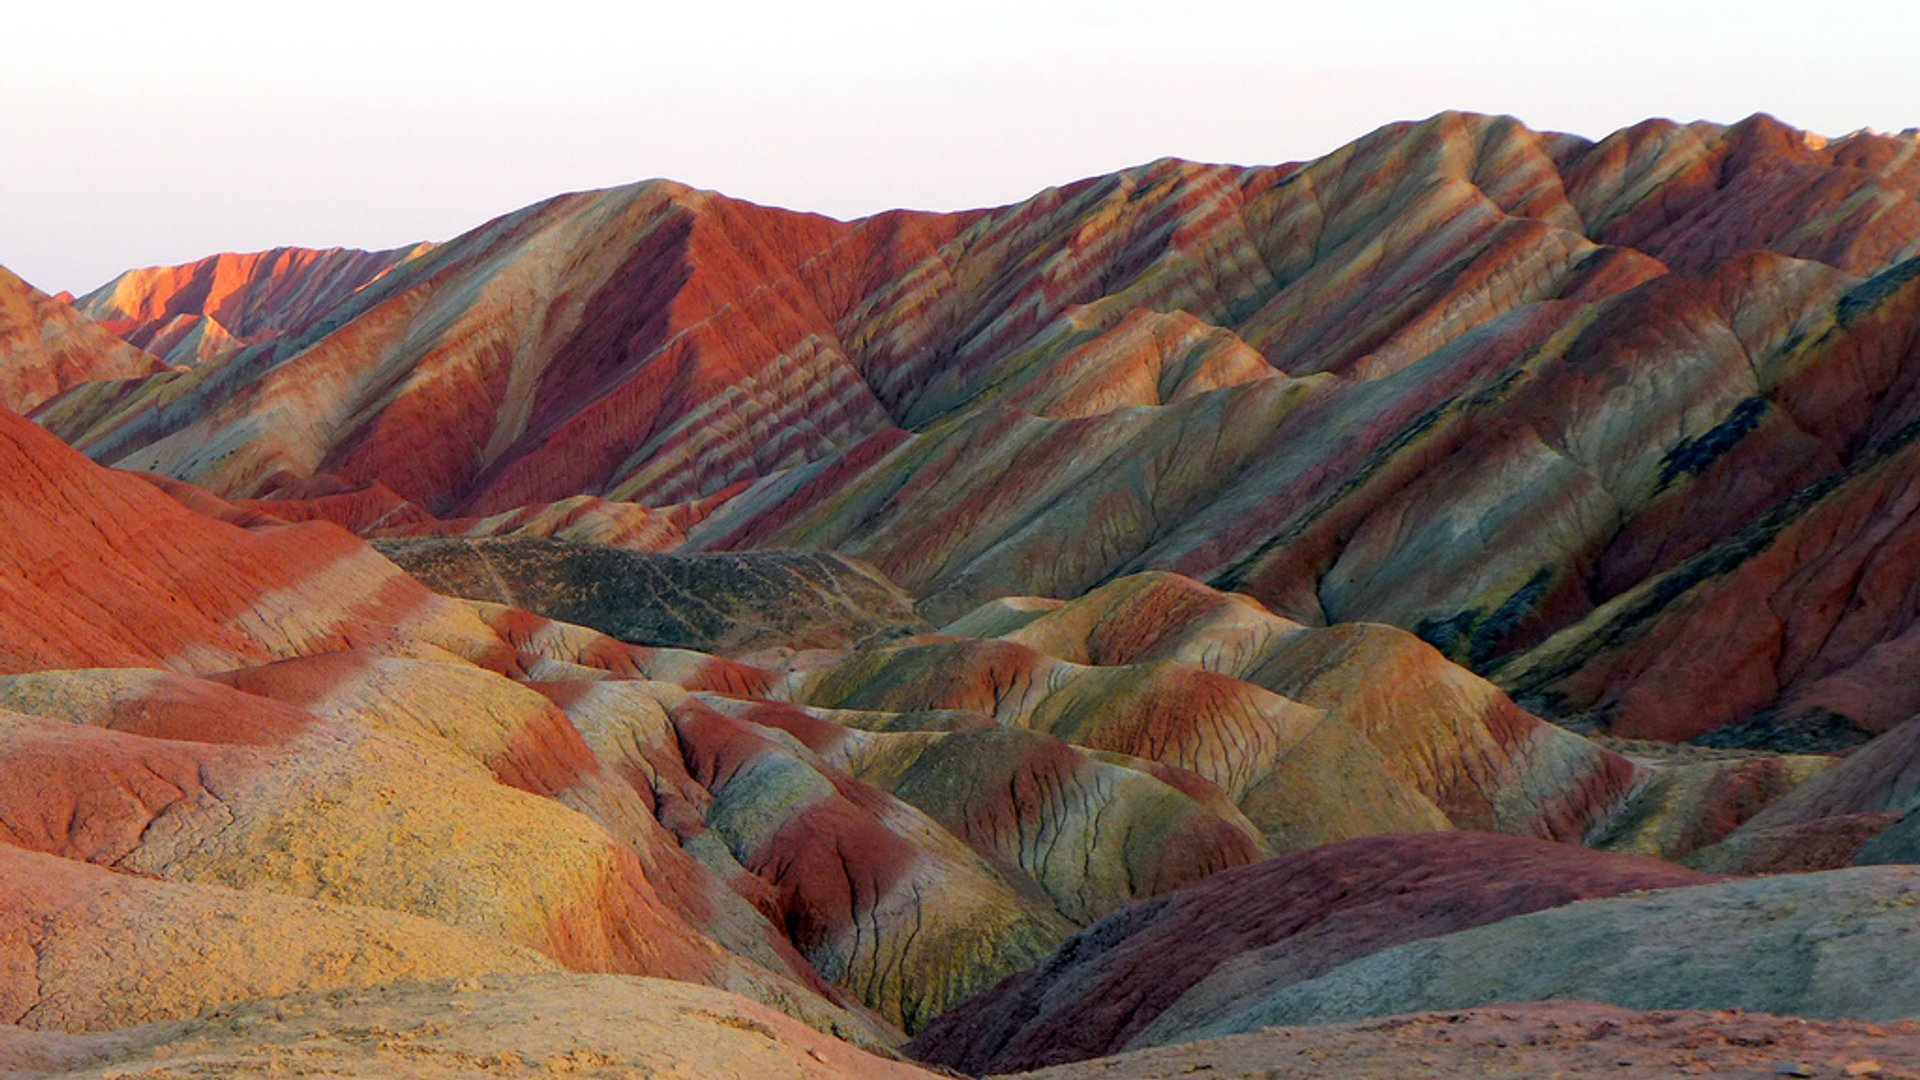 Rainbow Mountains in China 2020 - Best Time